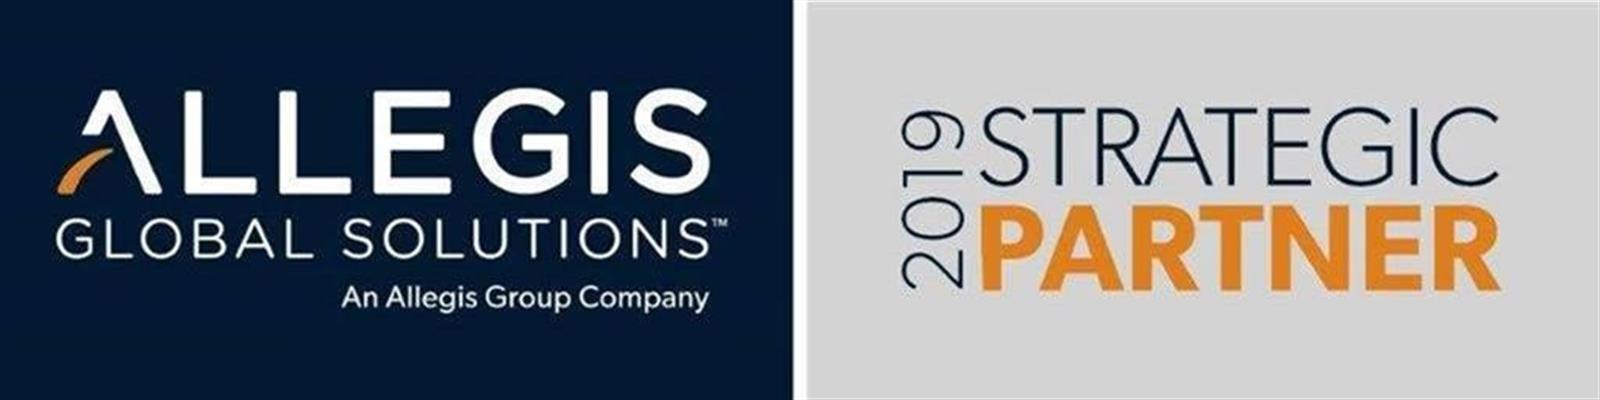 Award: Allegis Global Solutions 2018 Strategic Partner